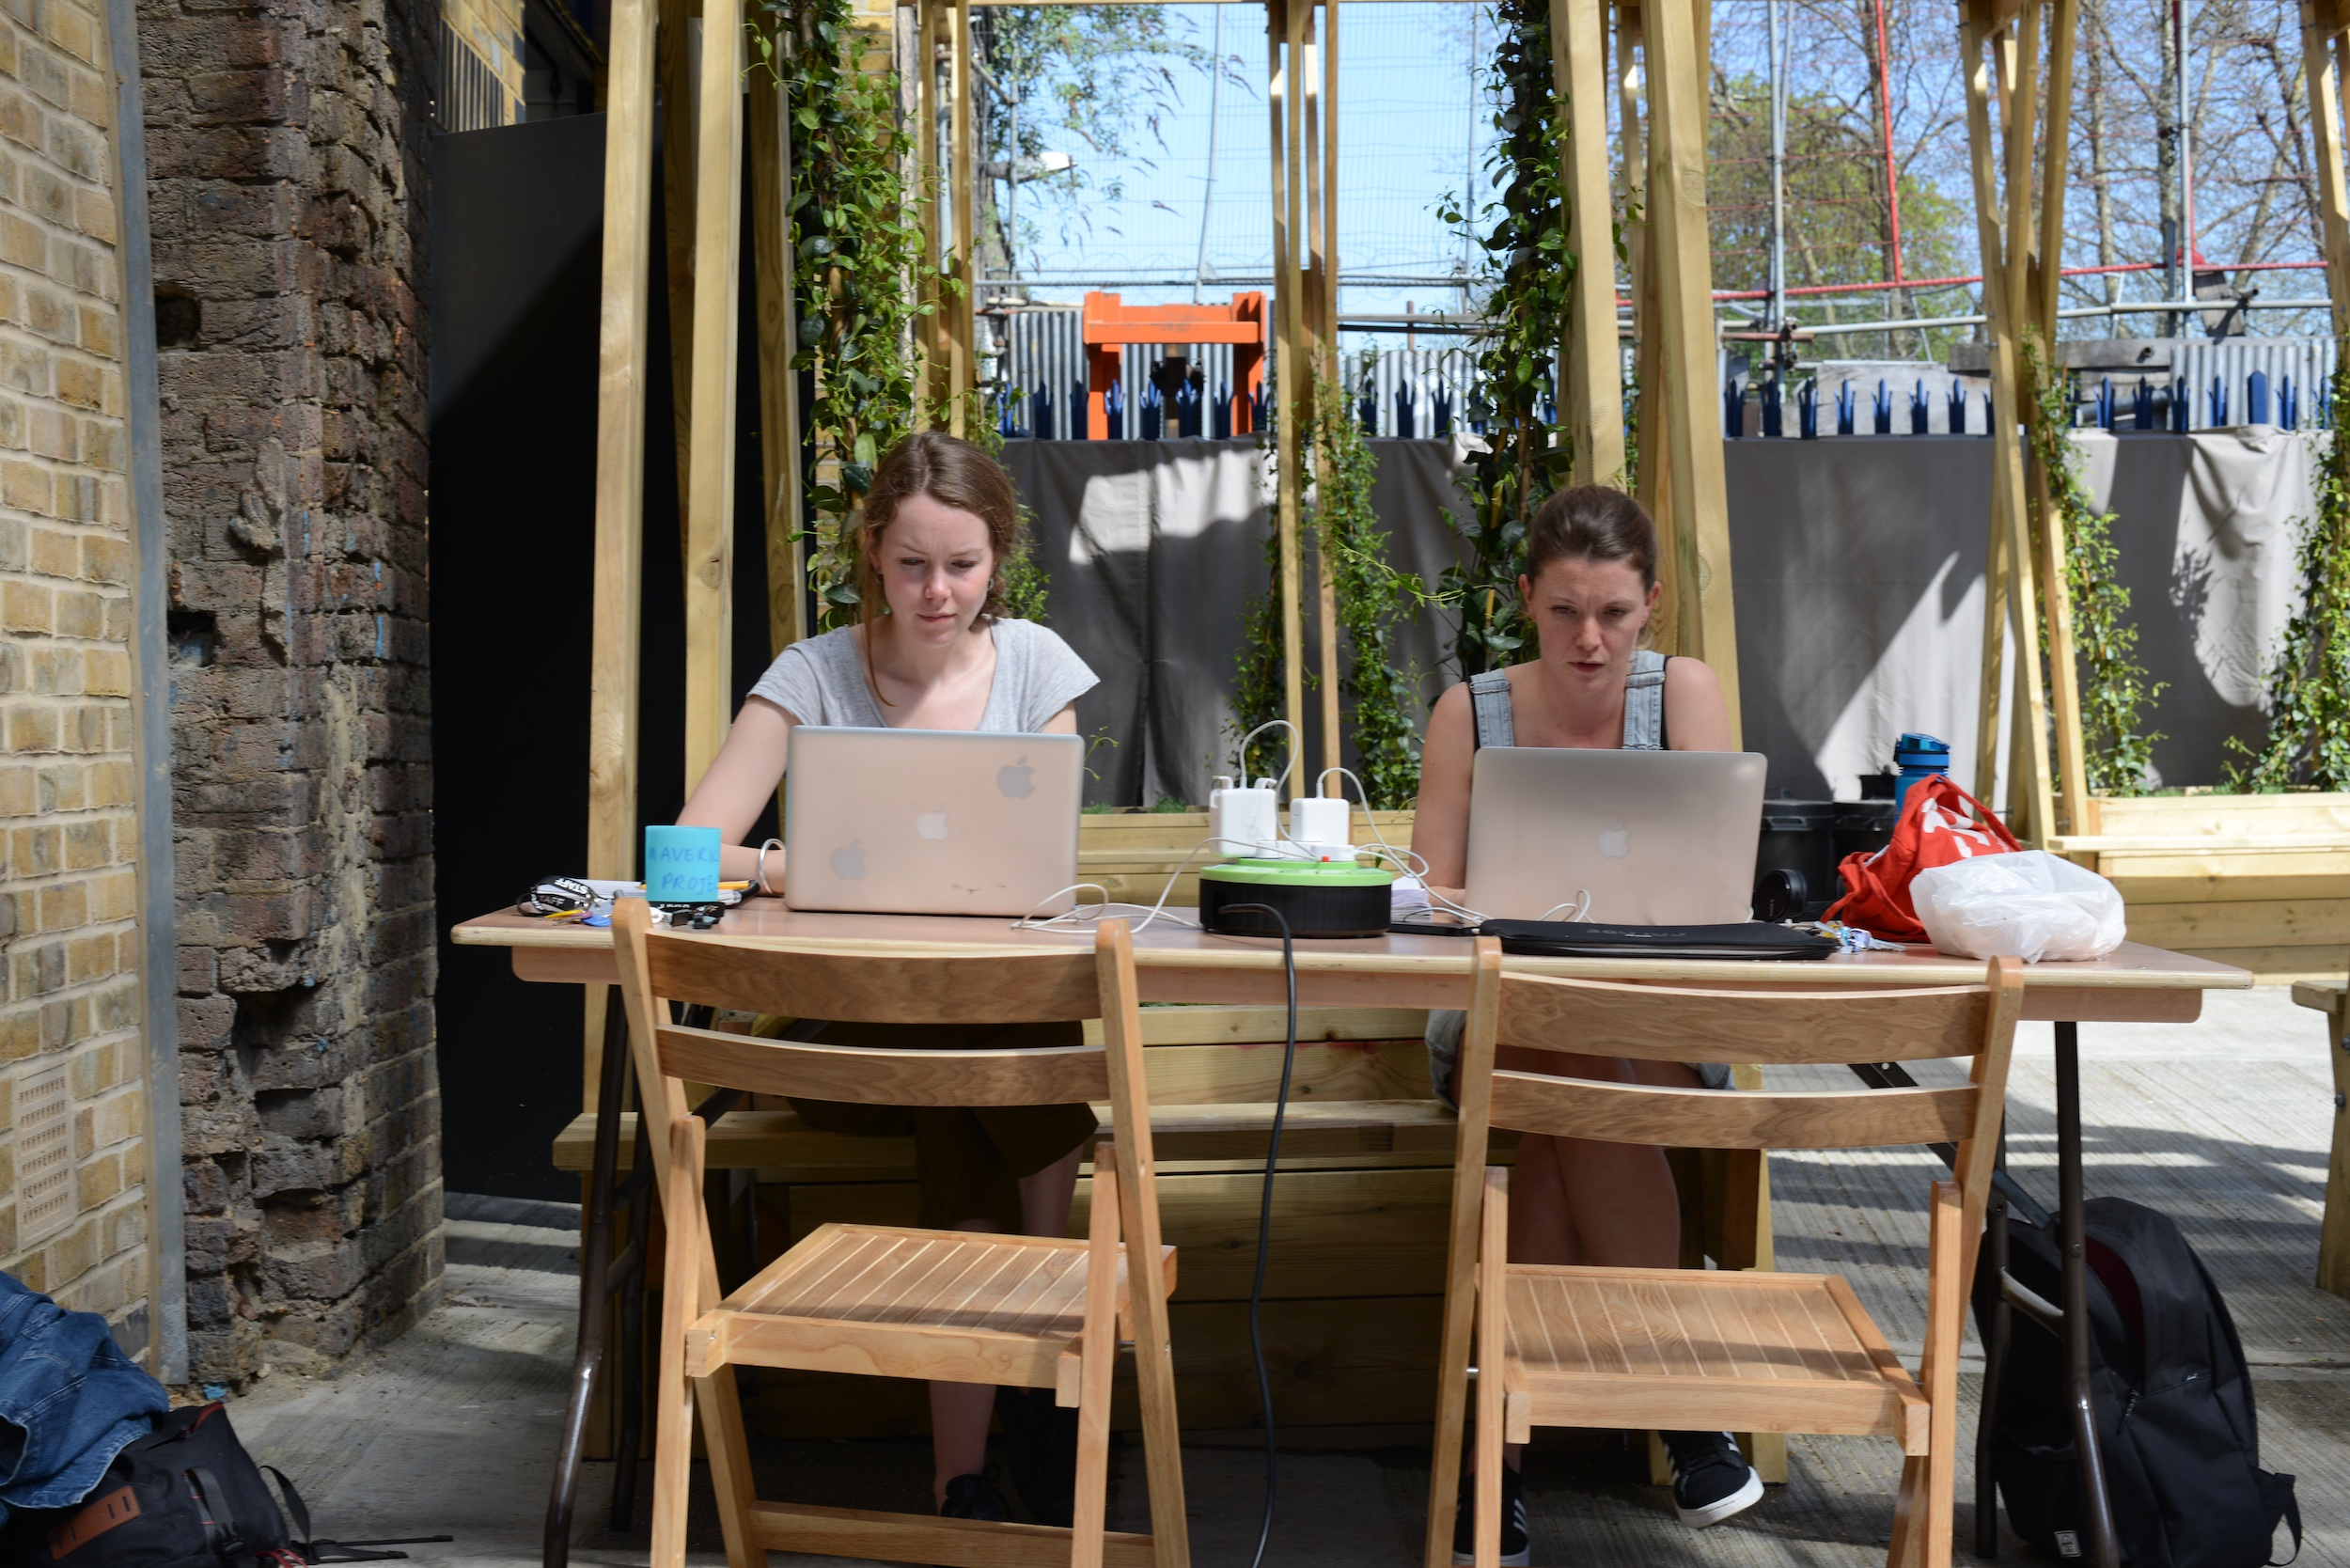 Creative businesses are taking advantage of Old Kent Road's central London location.